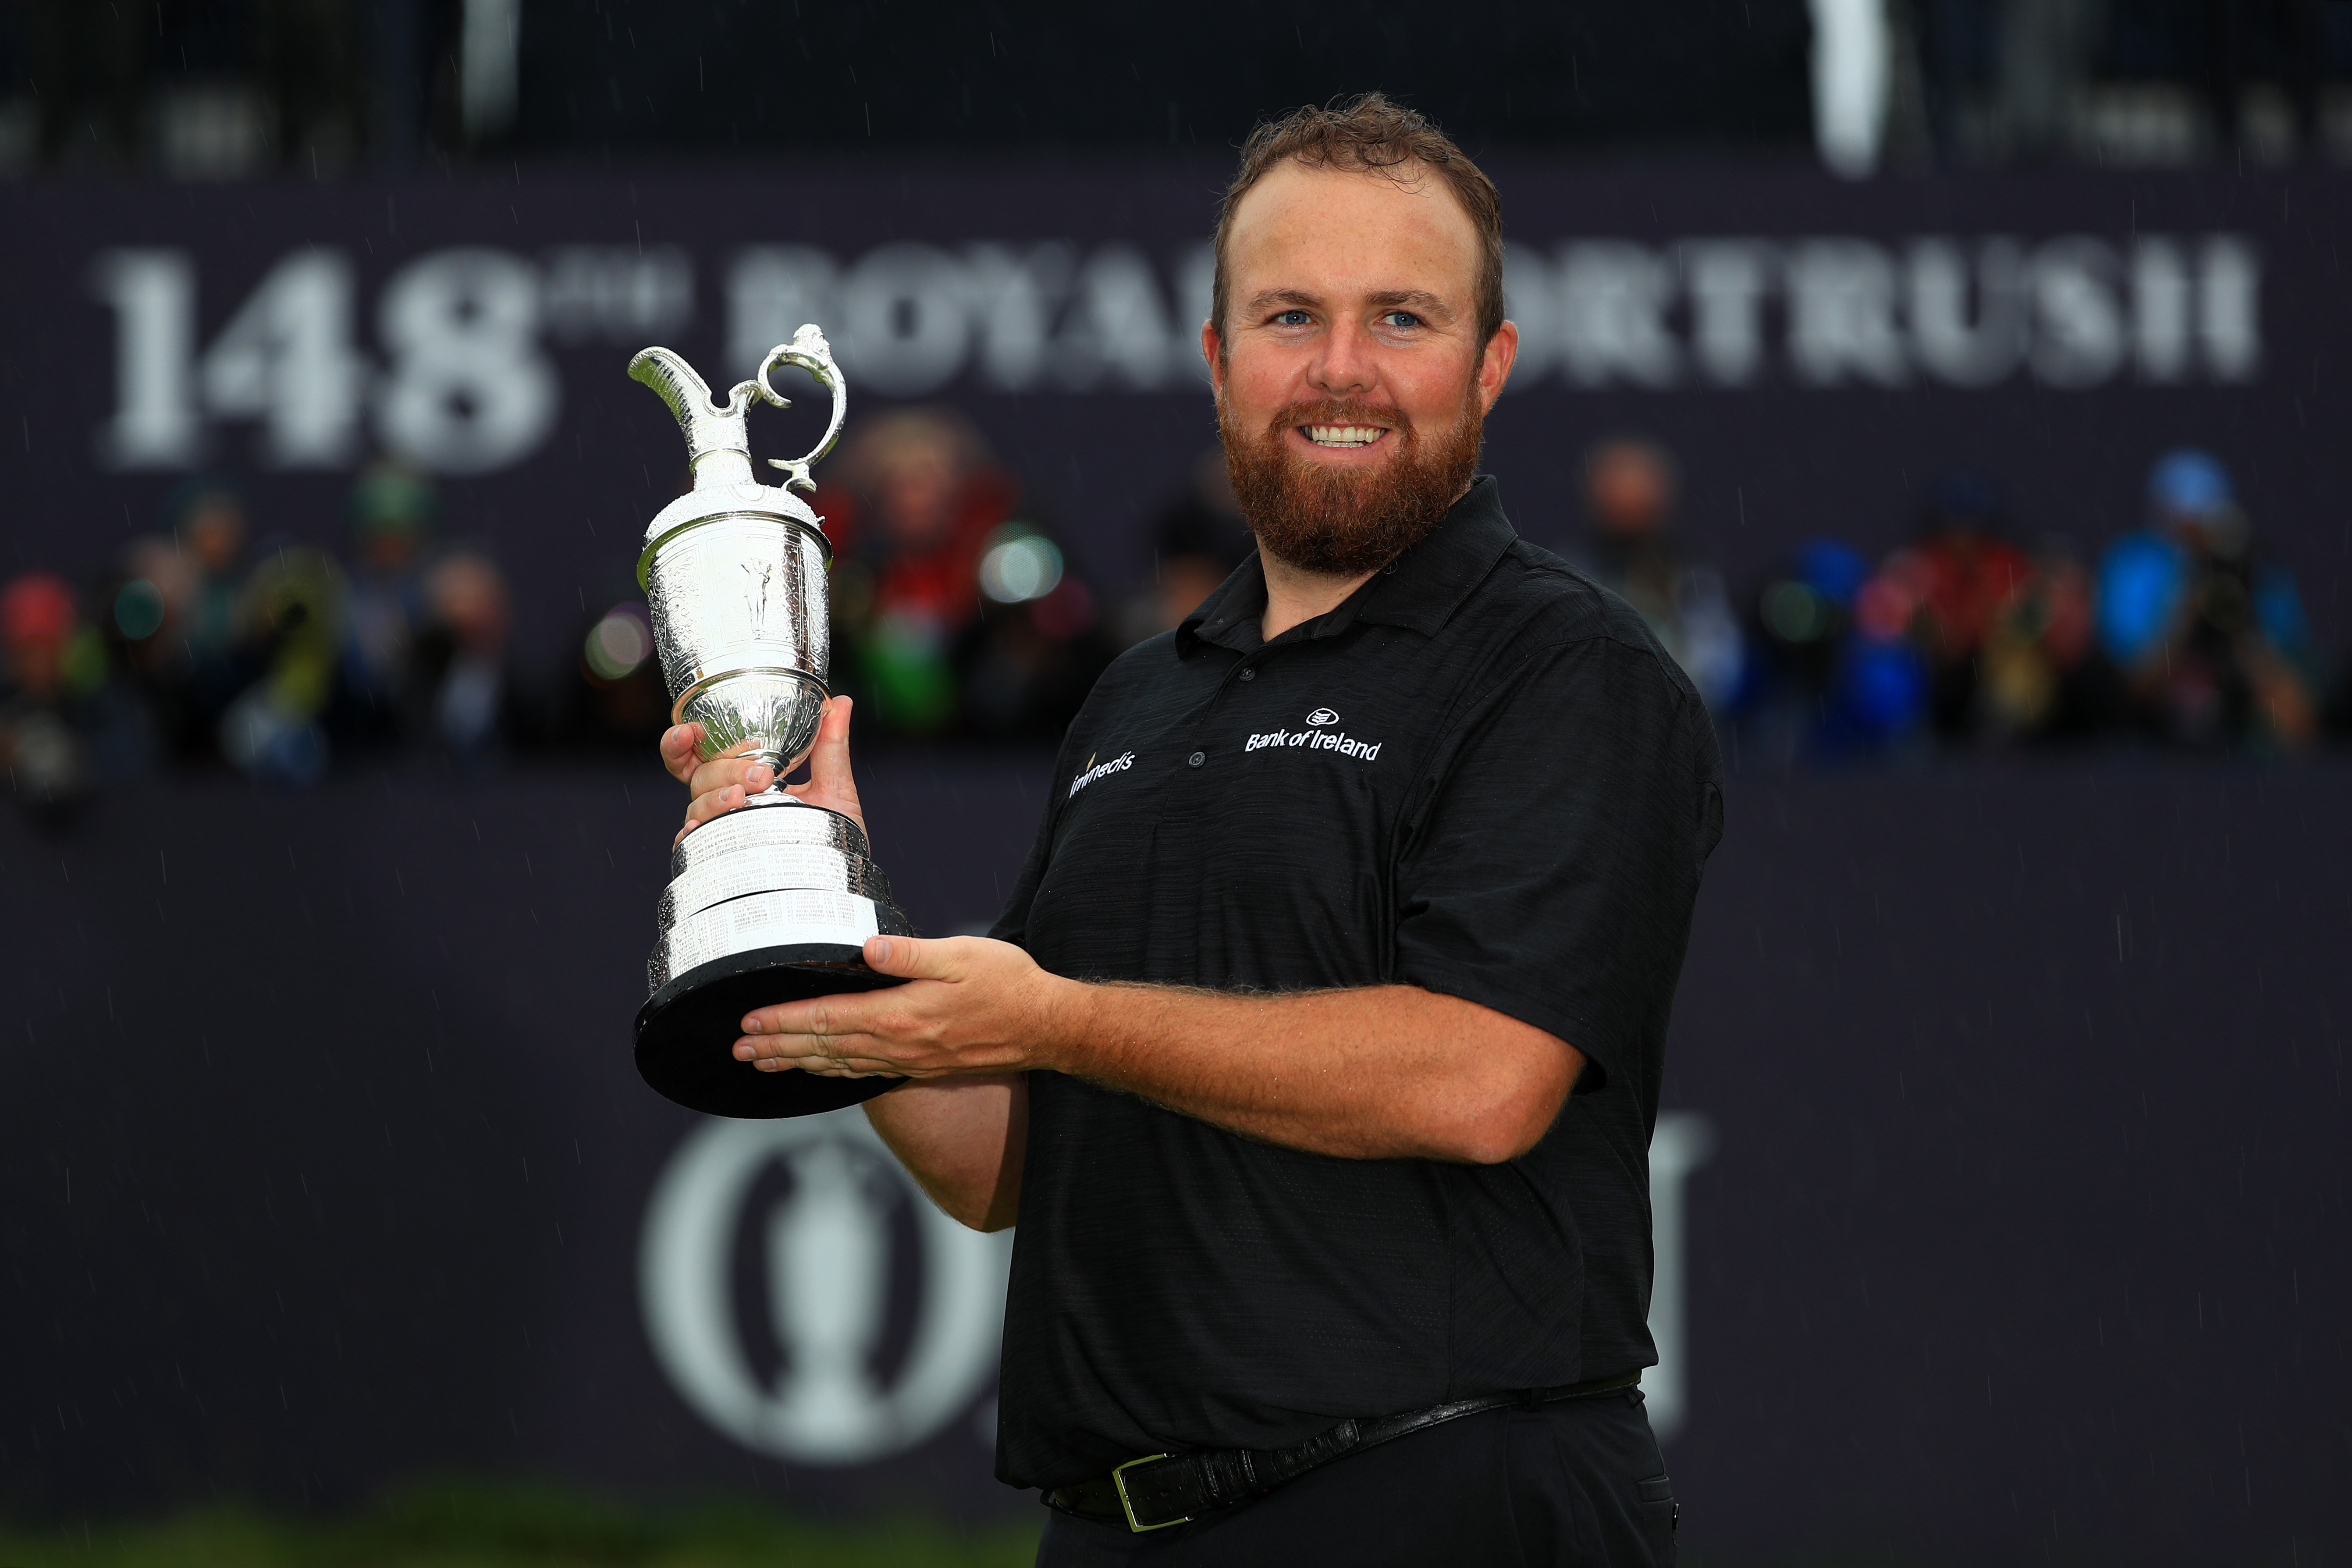 Shane Lowry WITB: The 2019 Open Championship